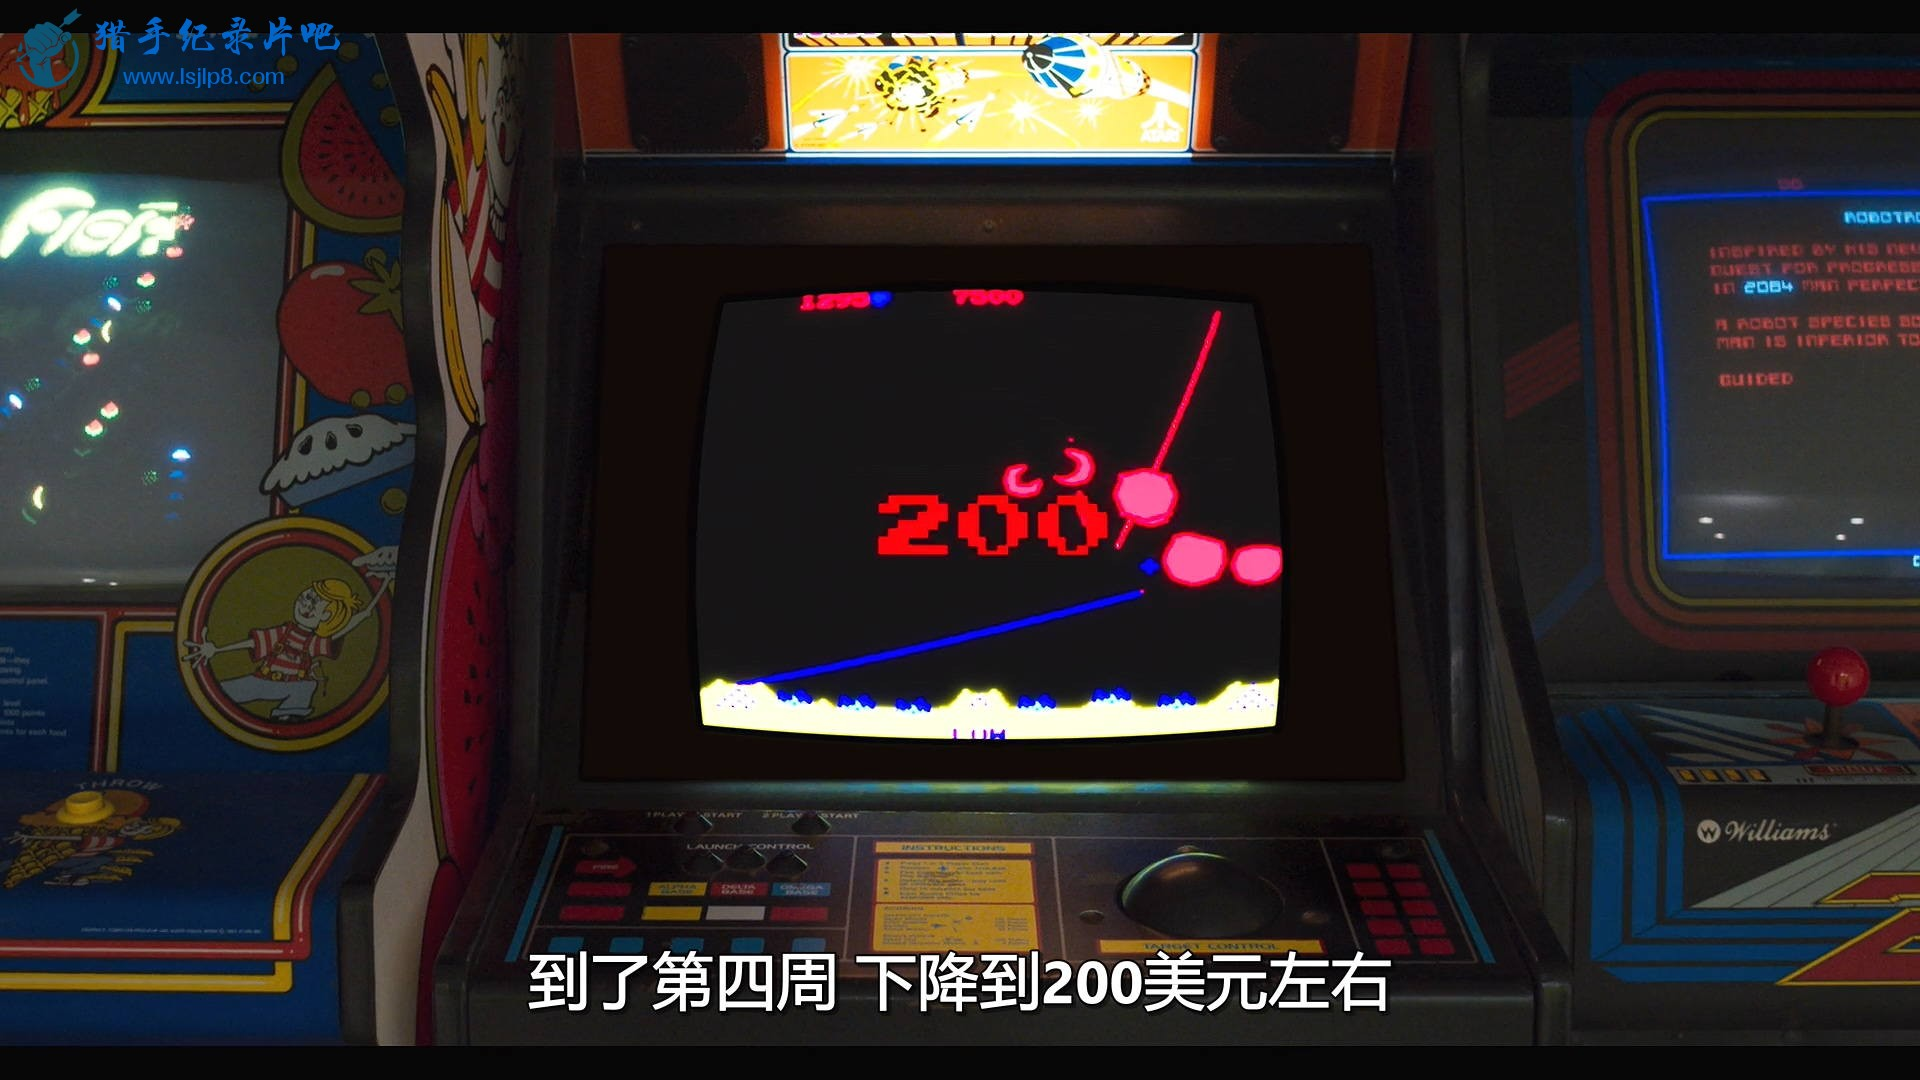 High.Score.2020.S01E01.1080p.WEB.H264-AMRAP.mkv_20200915_111913.693_看图王.jpg